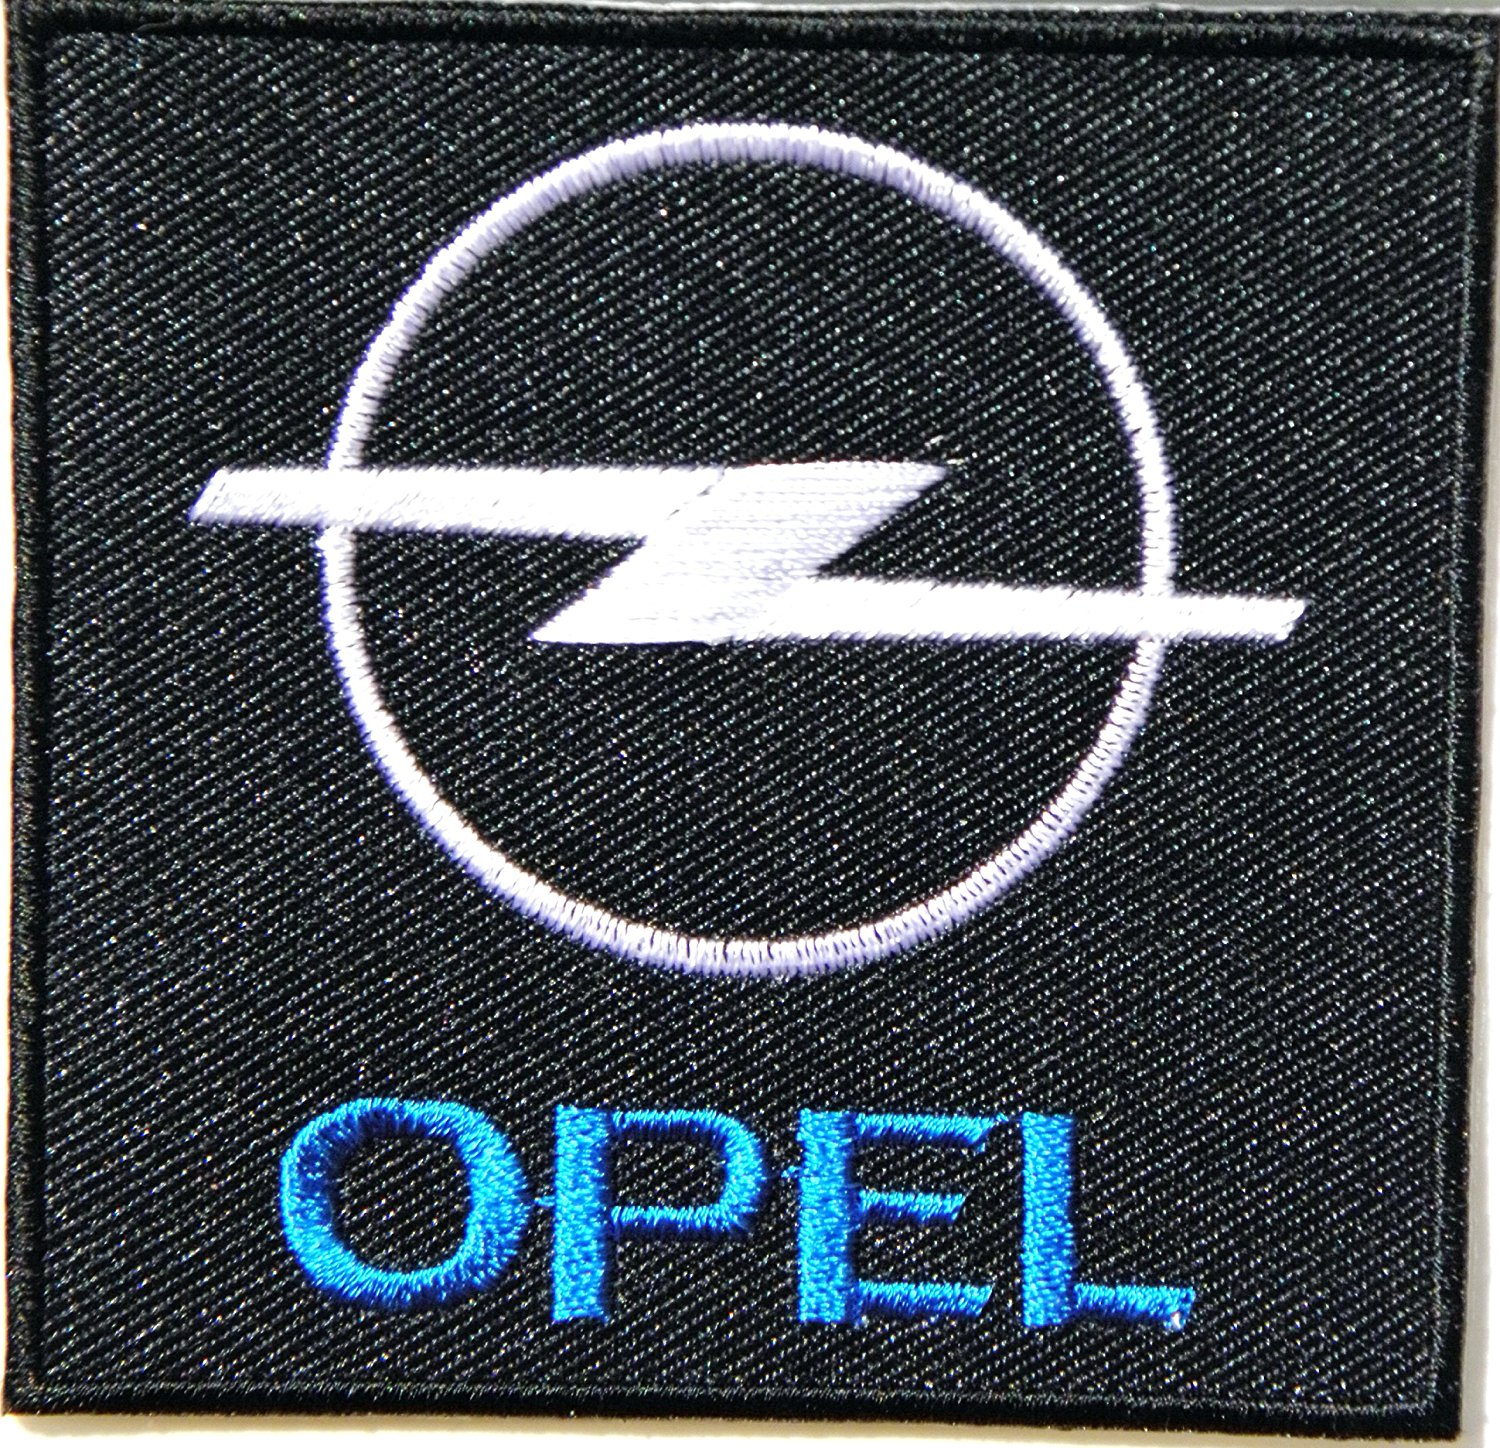 hight resolution of opel logo sign car racing patch 3 logo sew ironed on badge embroidery applique patch walmart com